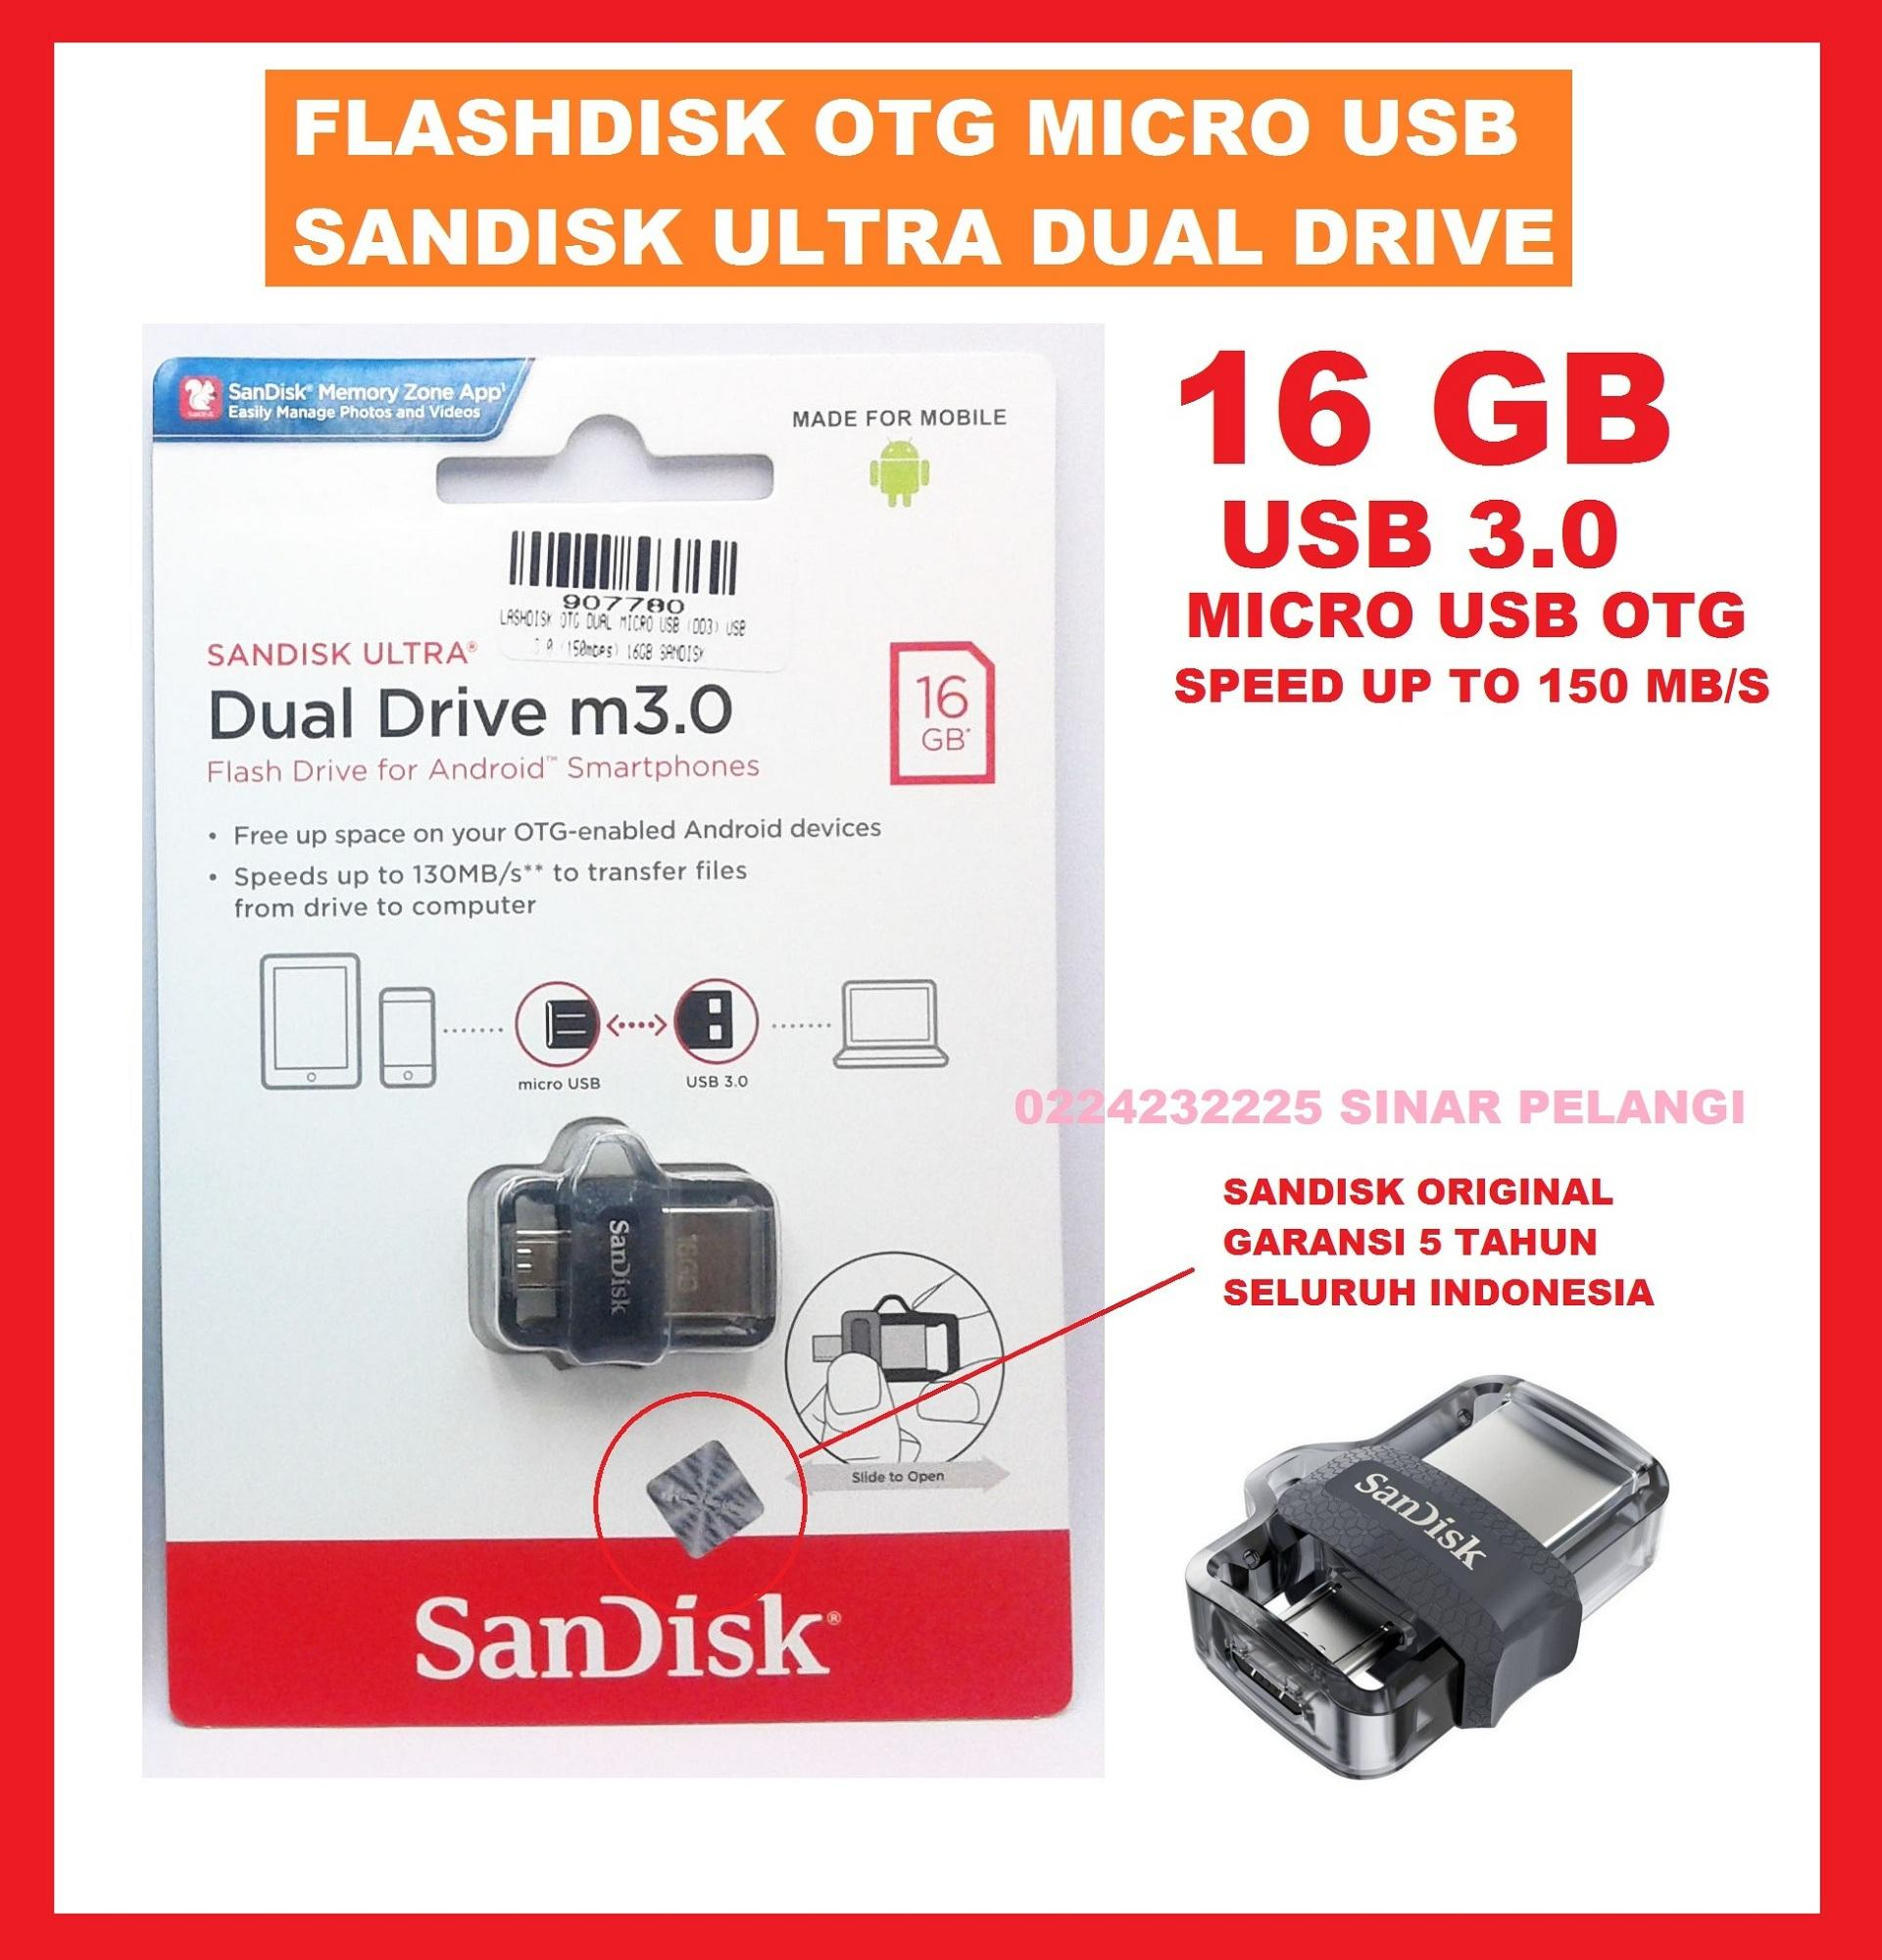 Buy Sell Cheapest Usb Flashdrive Otg Best Quality Product Deals Flashdisk Vgen 32gb Dual Micro 30 Dd3 Sandisk 907781